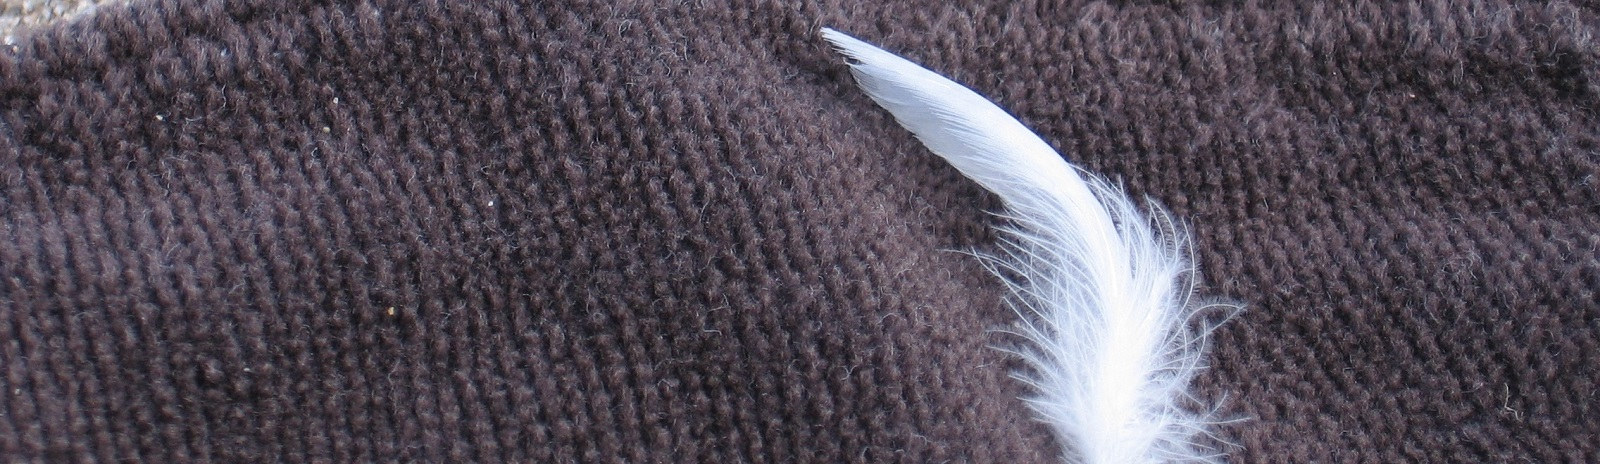 Feather on Fabric